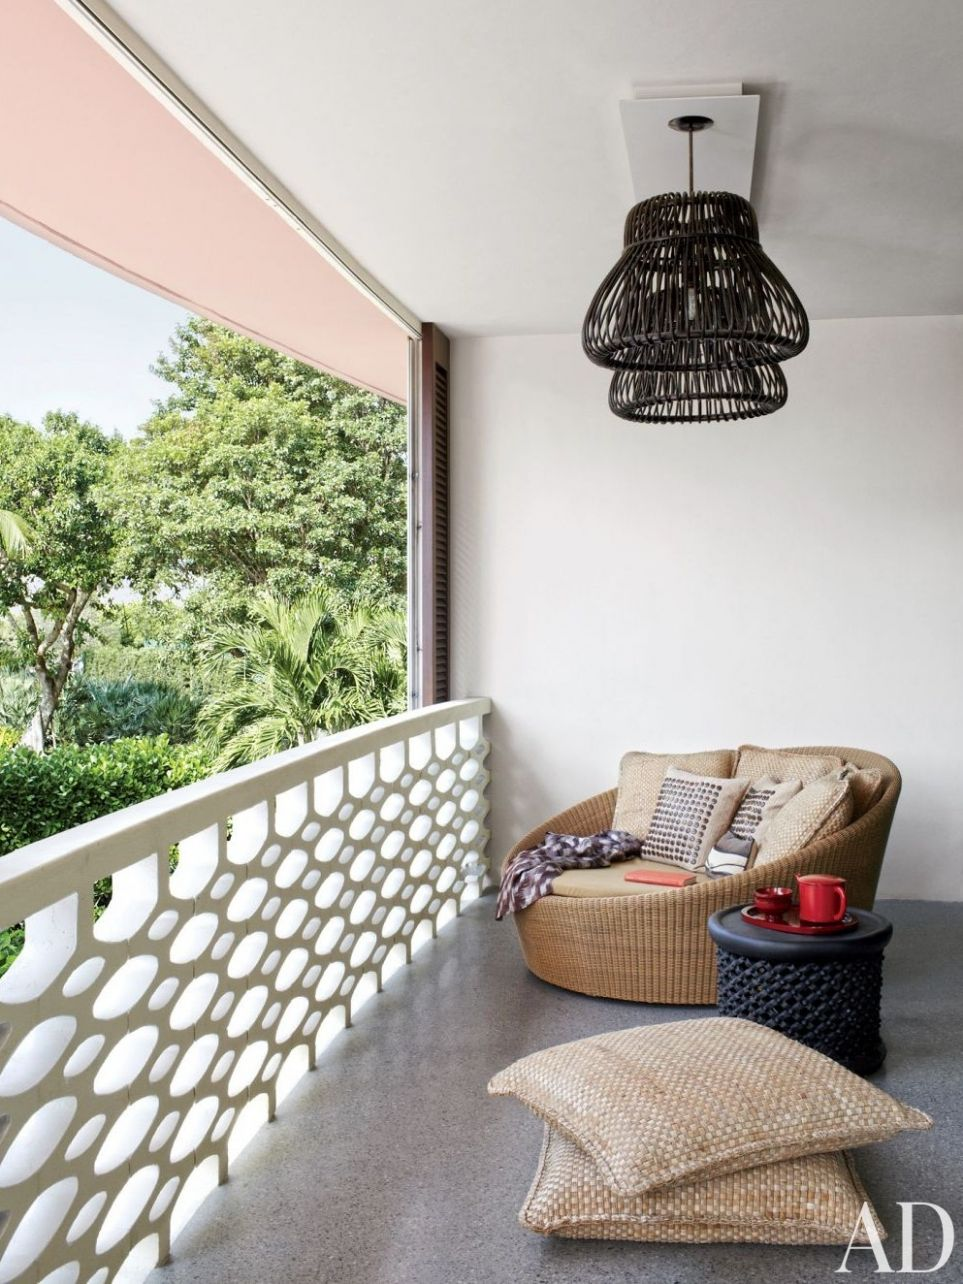 8 Cozy Balcony Ideas and Decor Inspiration | Architectural Digest - balcony ideas furniture